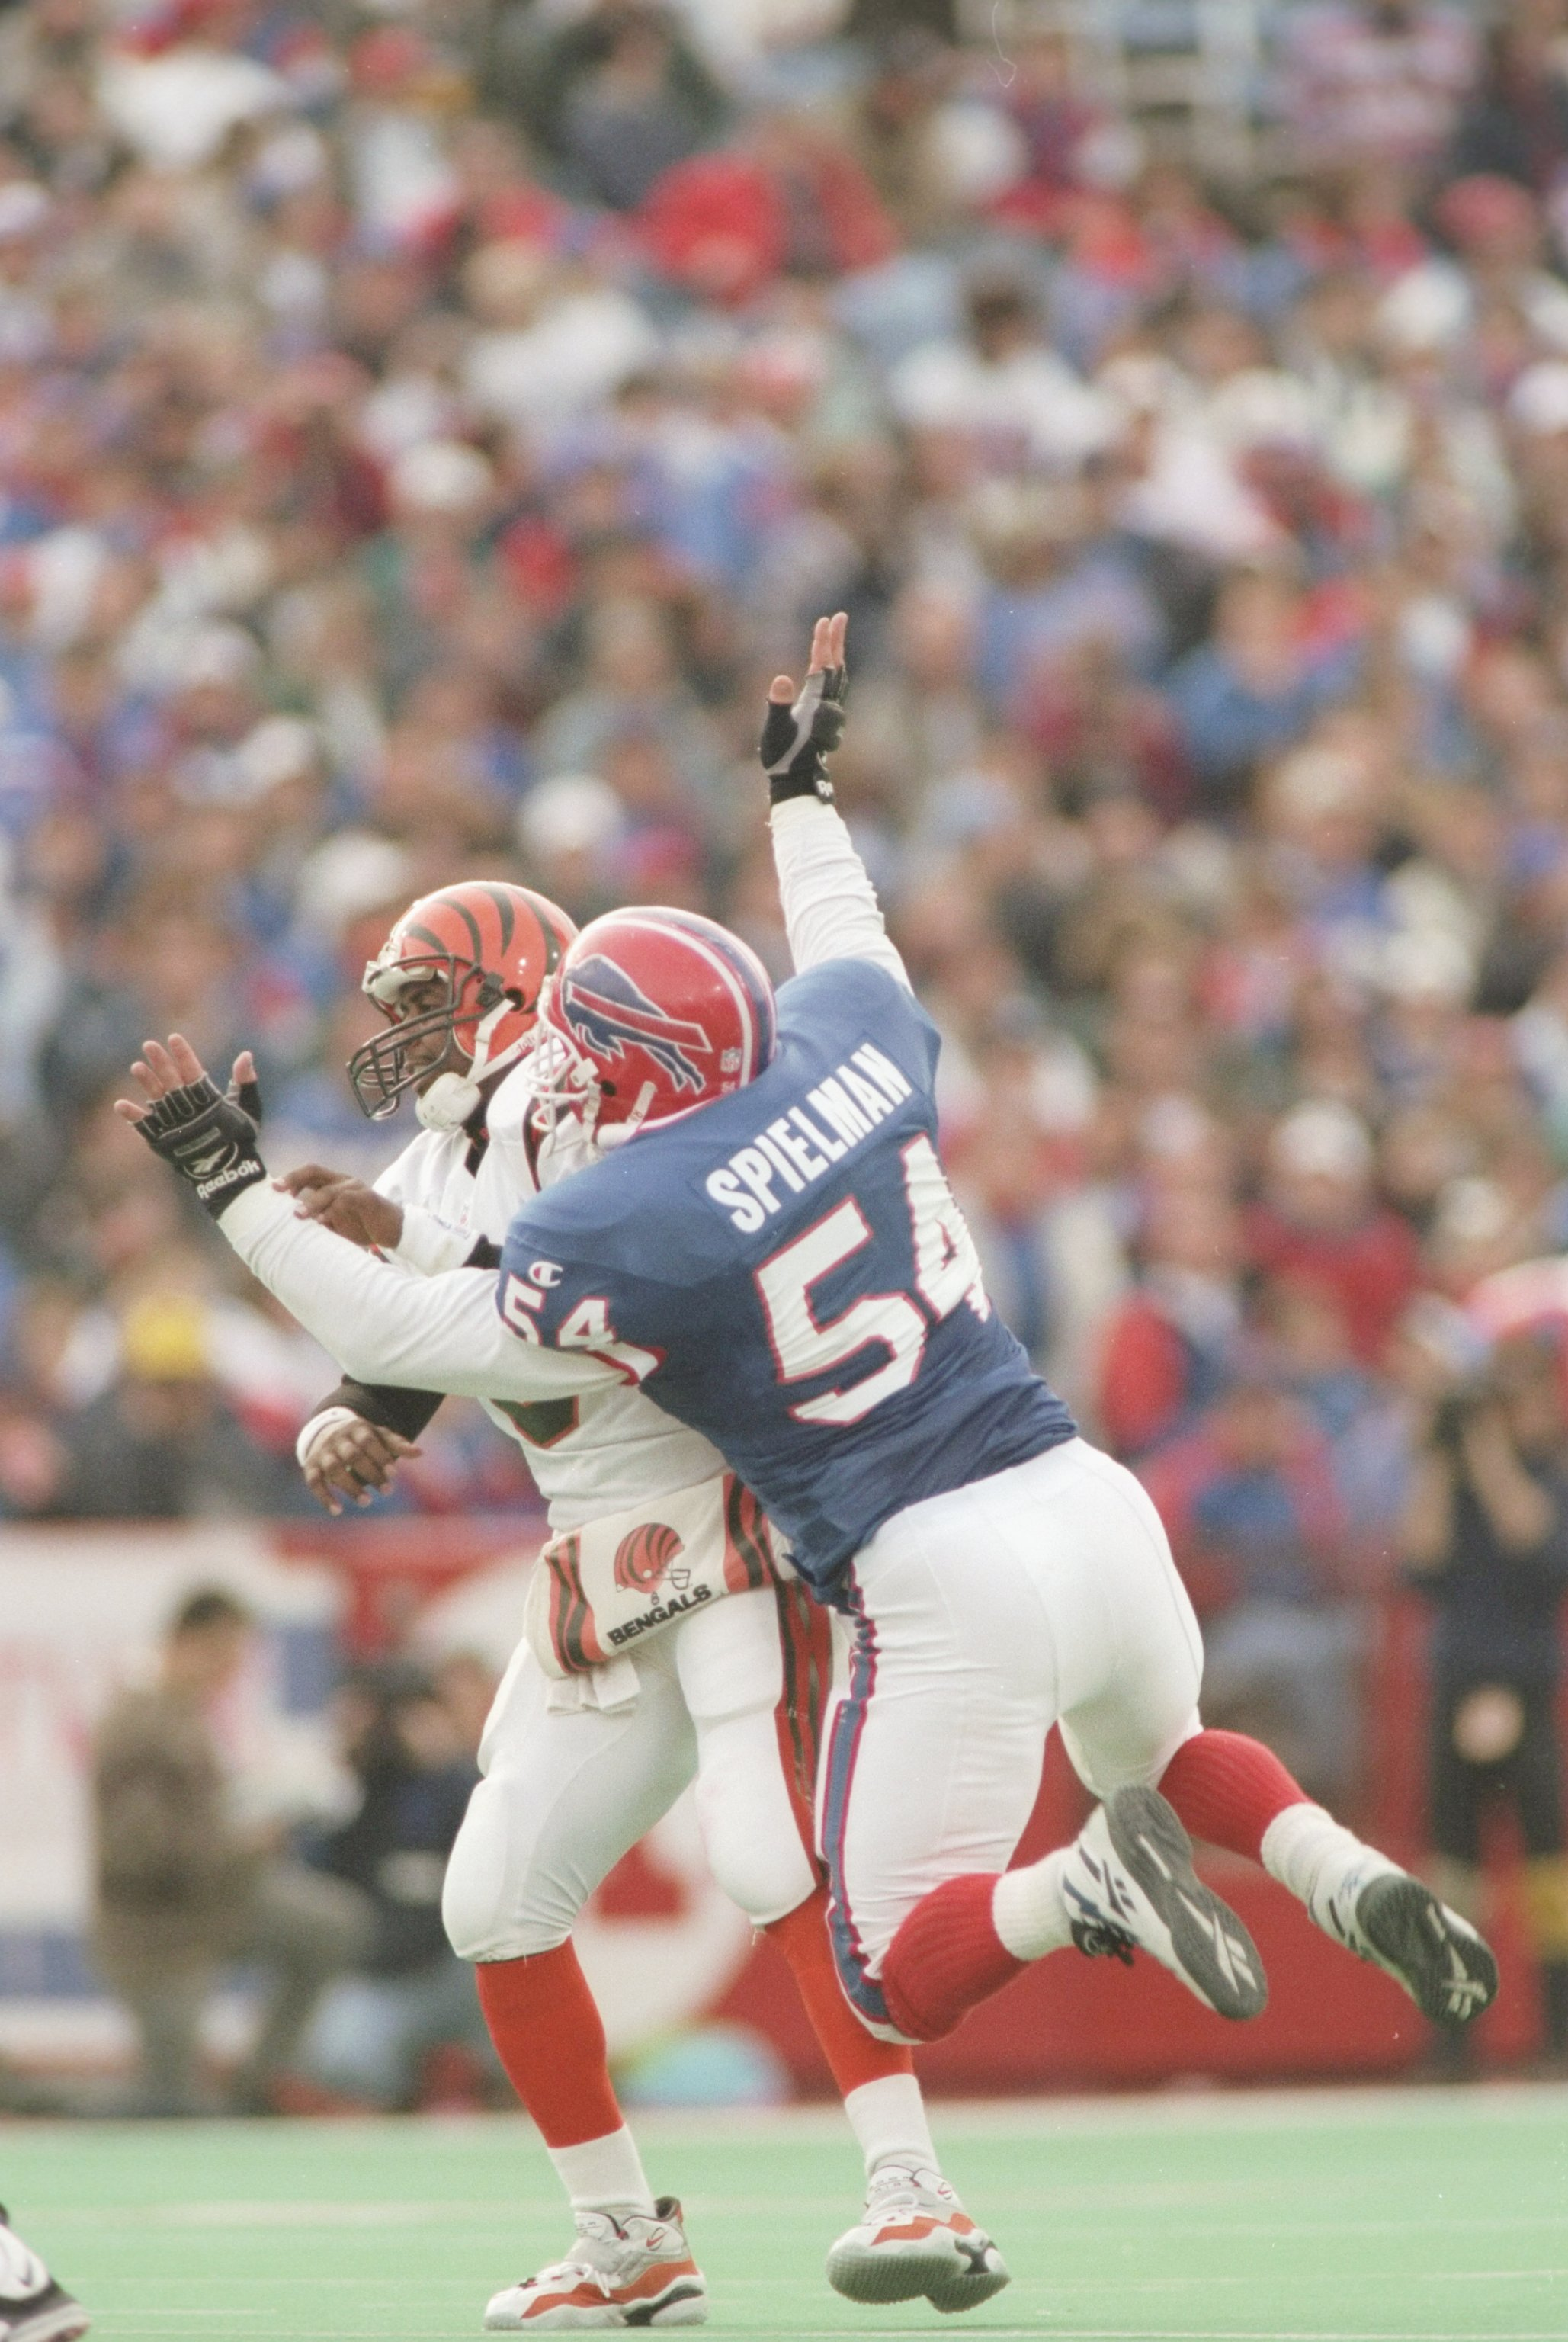 17 Nov 1996: Quarterback Jeff Blake of the Cincinnati Bengals is sacked by linebacker Chris Spielman of the Buffalo Bills during the Bengals 31-17 loss to the Buffalo Bills at Rich Stadium in Orchard Park, New York.